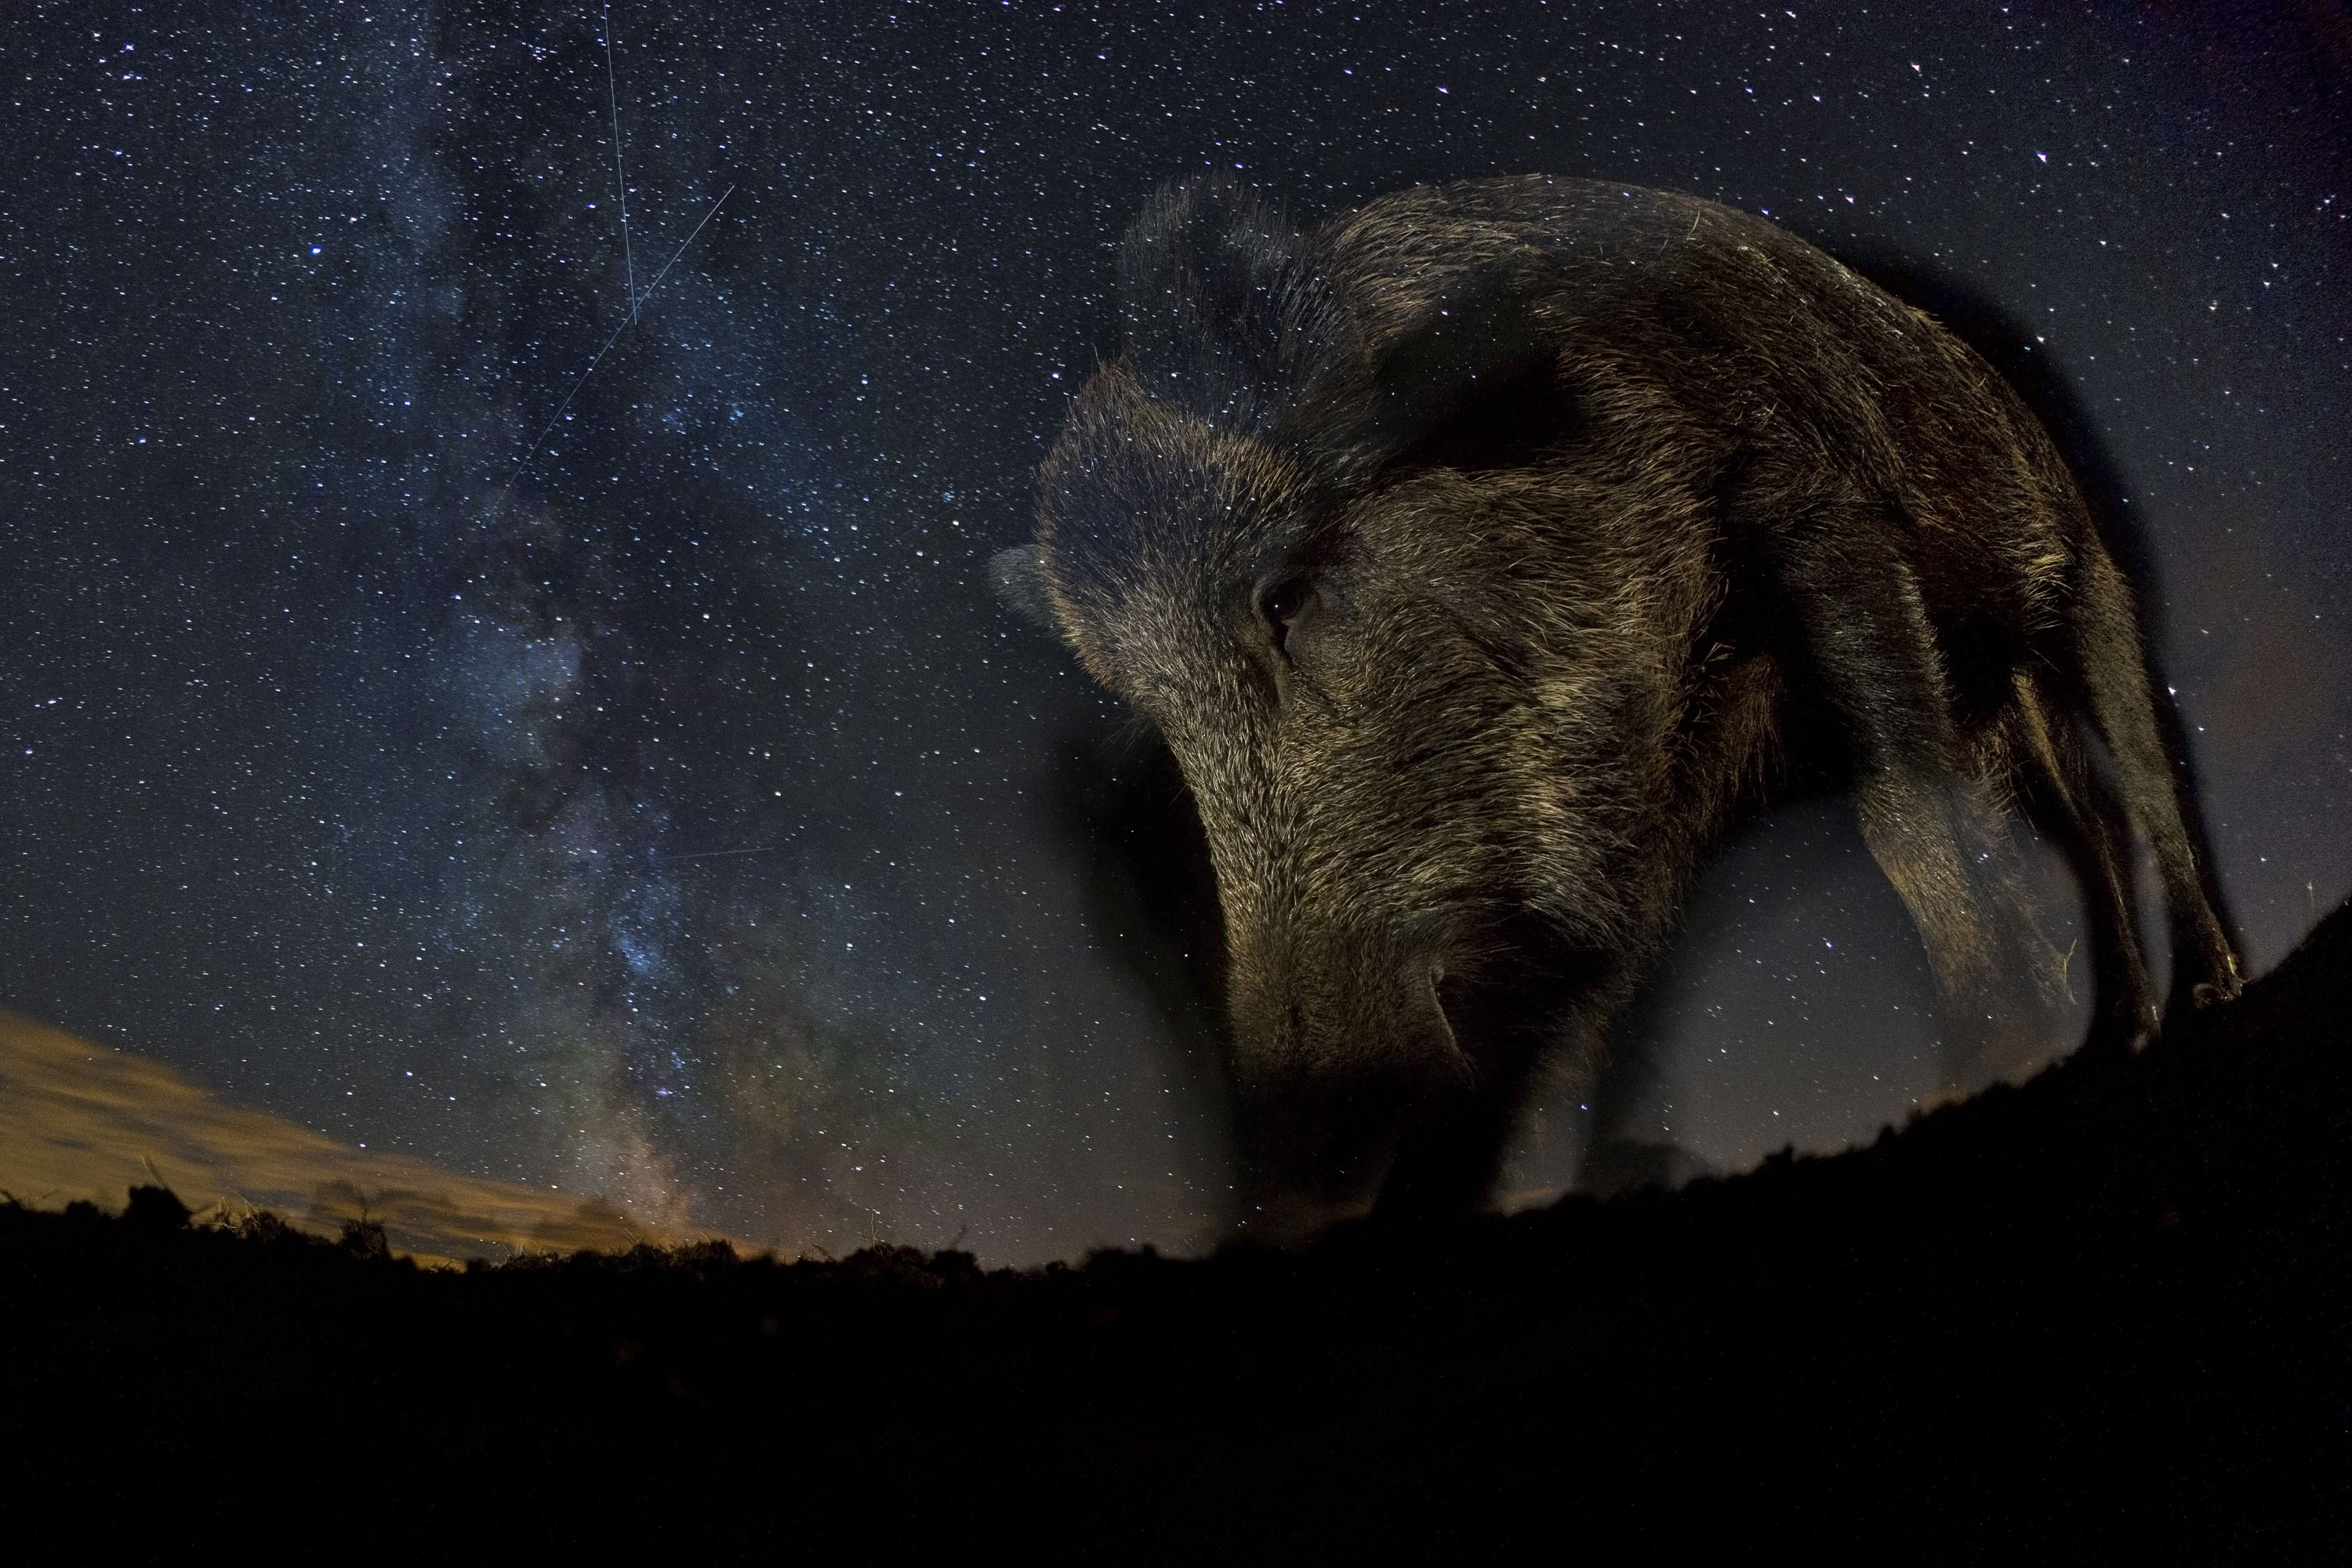 GDT European Wildlife Photographer of the Year 2015